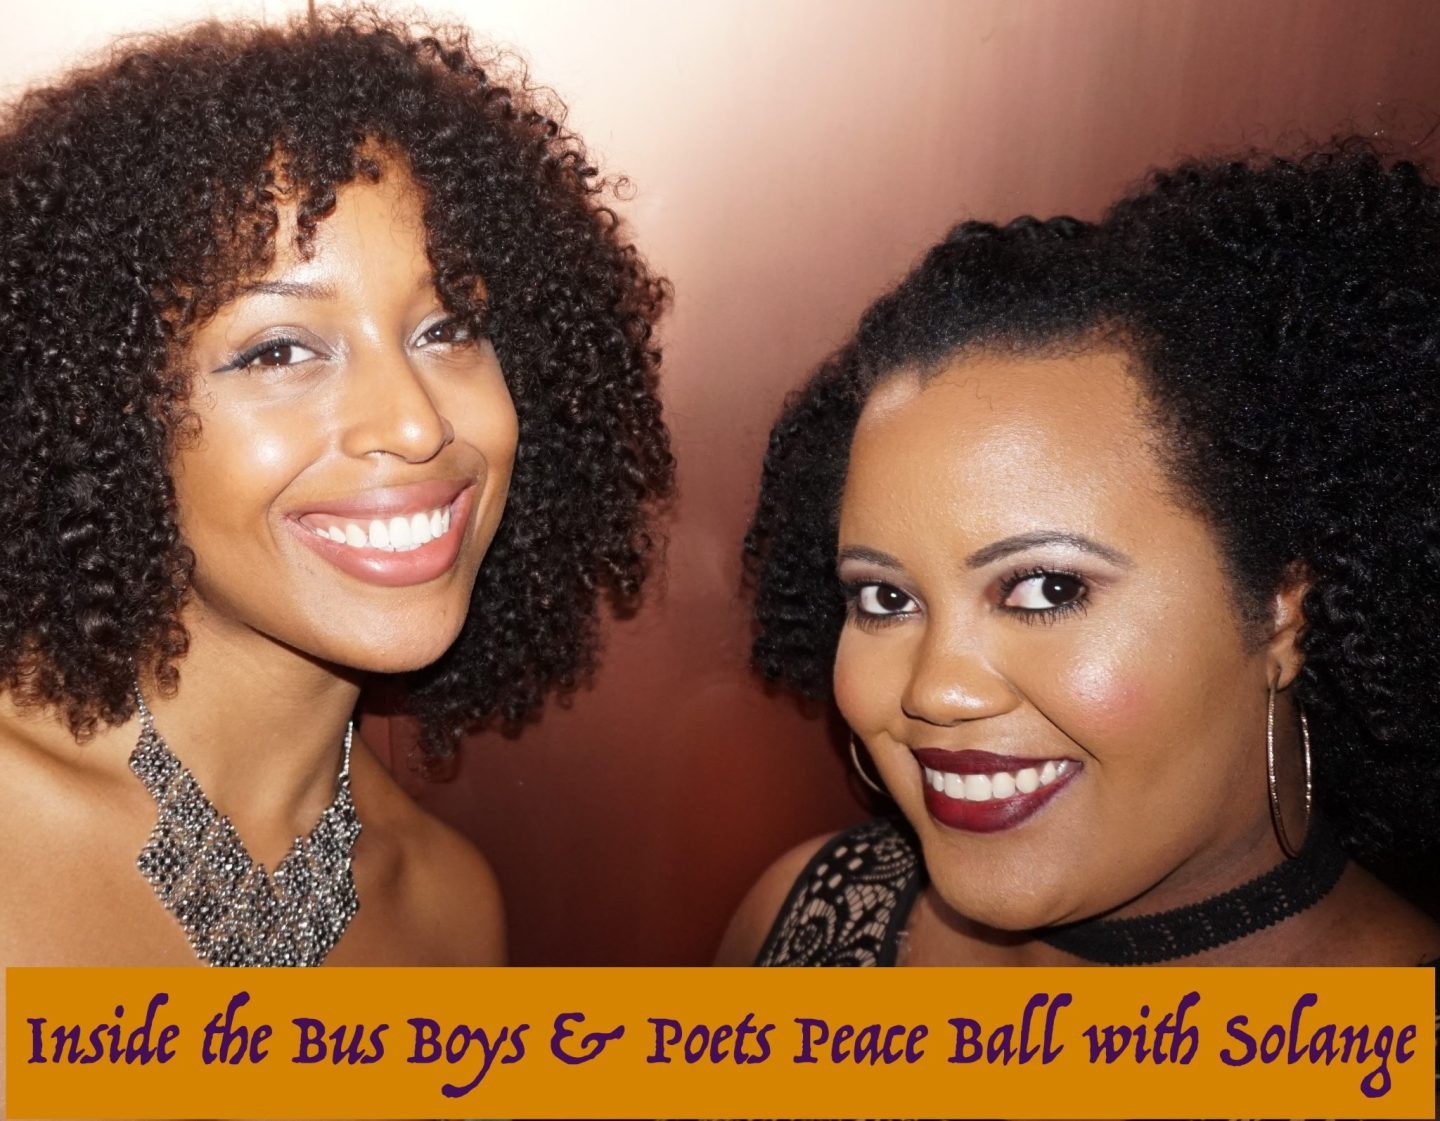 Busboys & Poets Peace Ball w/ Solange + Donald Trump Inauguration Madness VLOG!